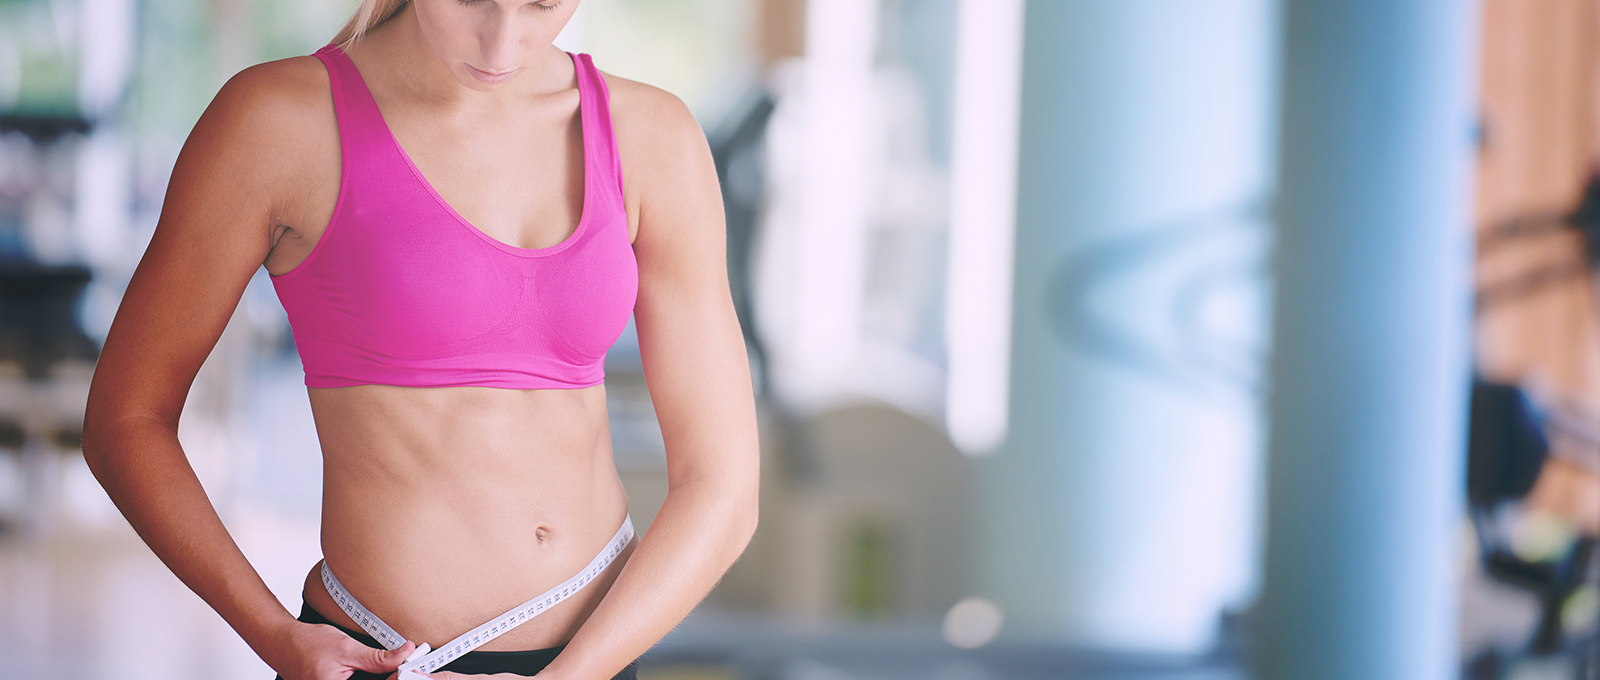 Weight loss Service in Lewisham, London